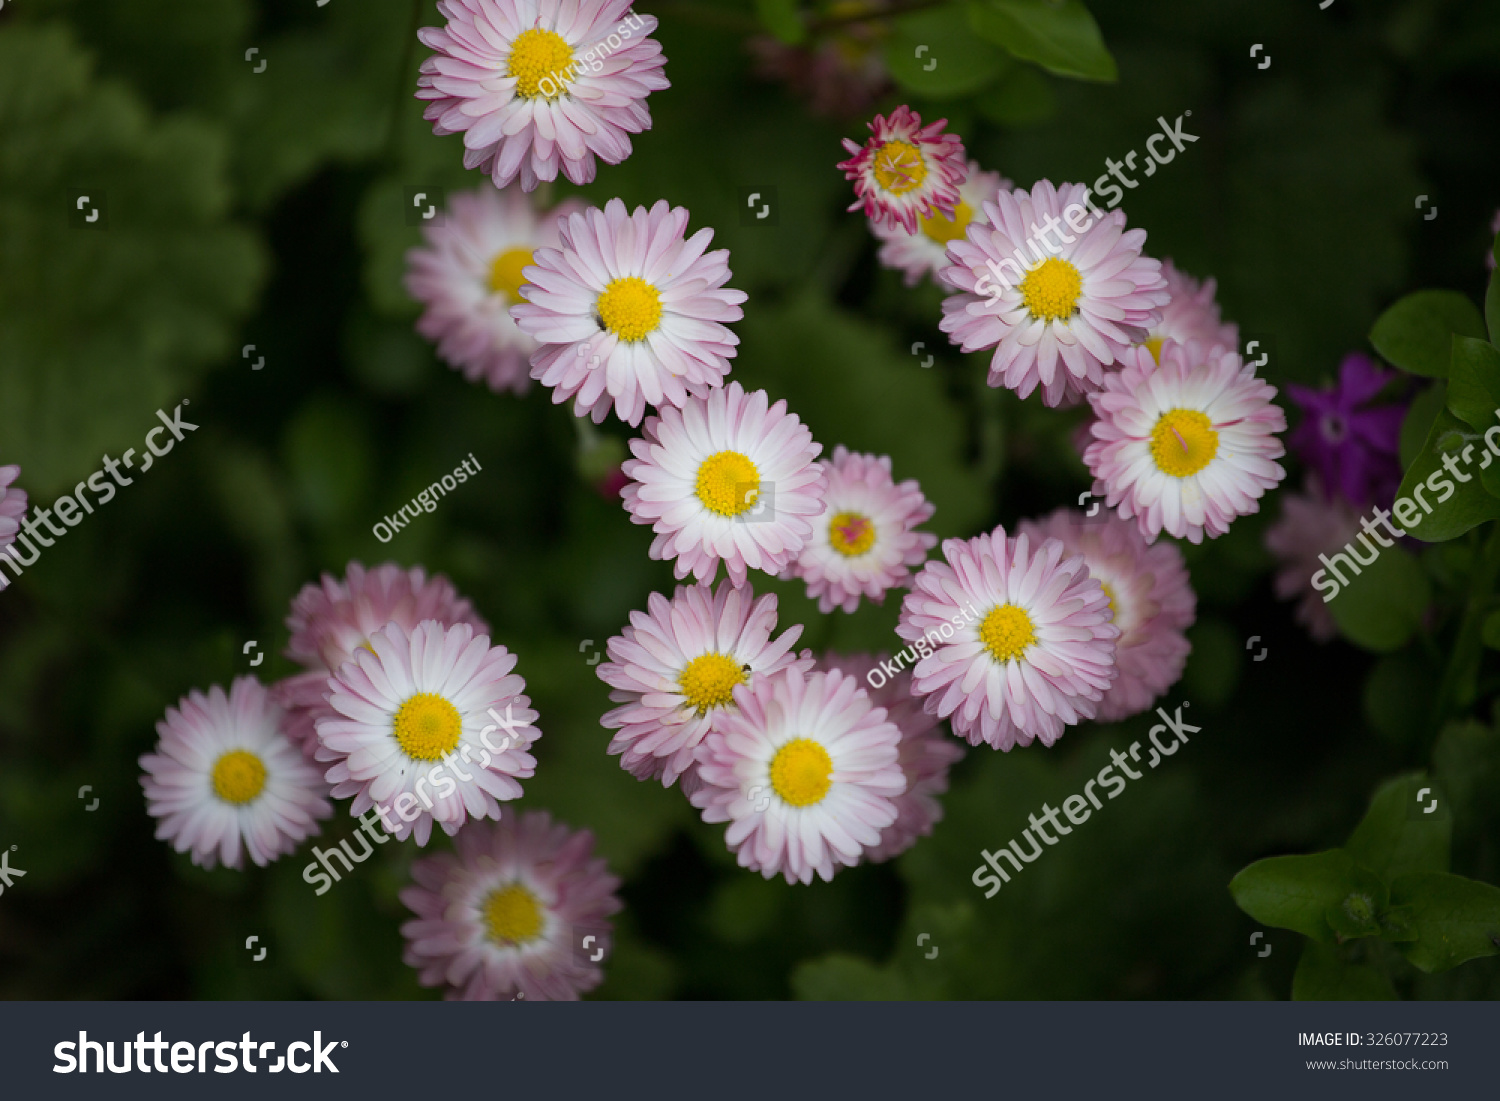 Little daisy flowers stock photo edit now 326077223 shutterstock little daisy flowers izmirmasajfo